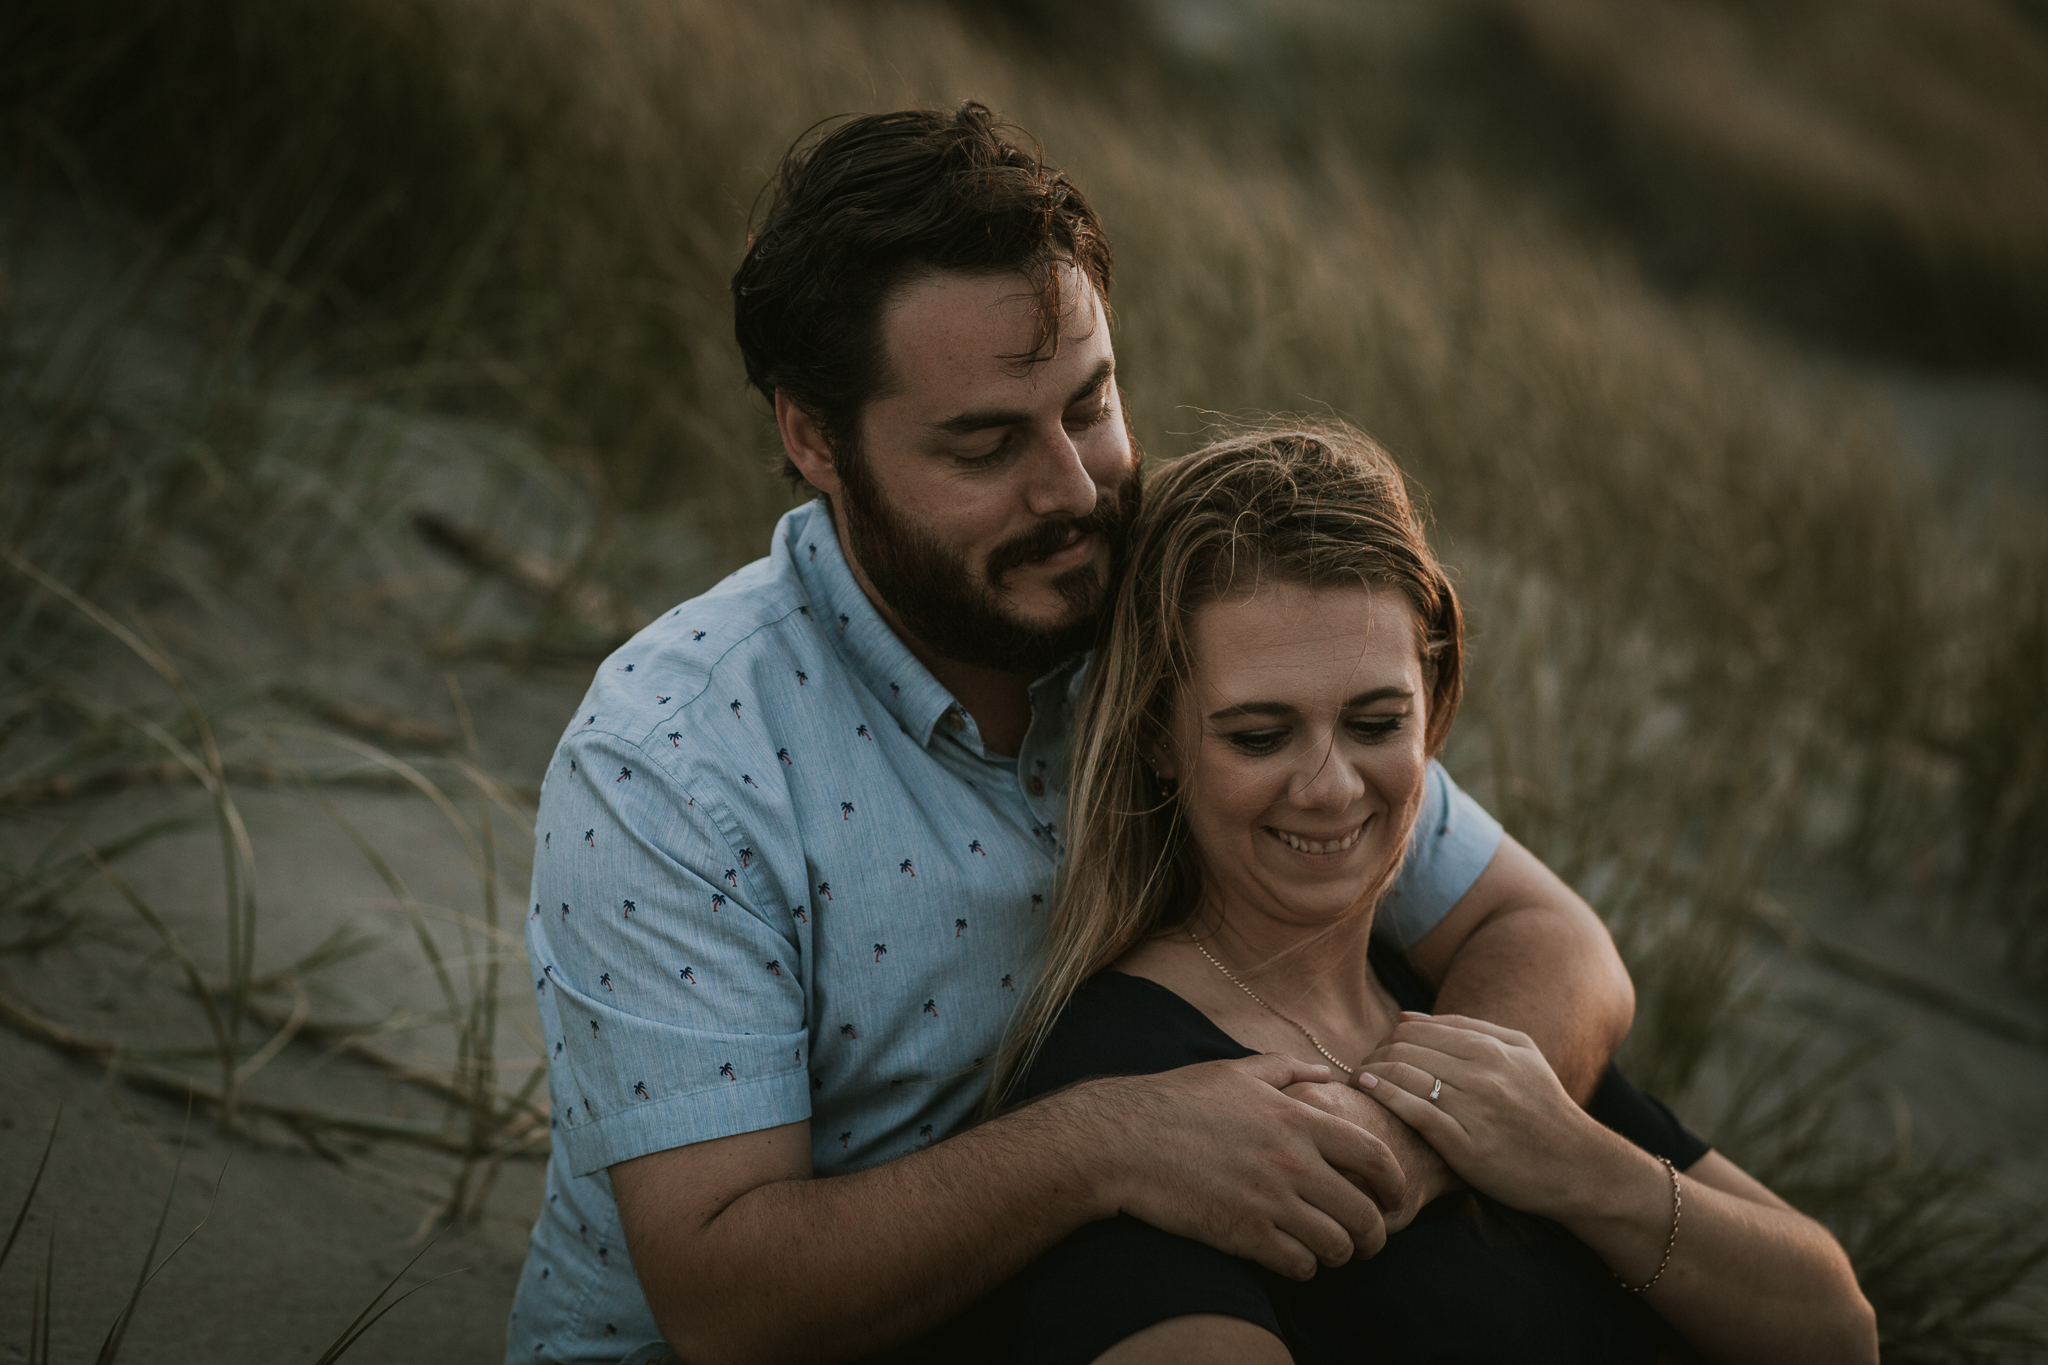 Ohope Beach engagement Shoot Wedding Photographer Napier-62.jpg